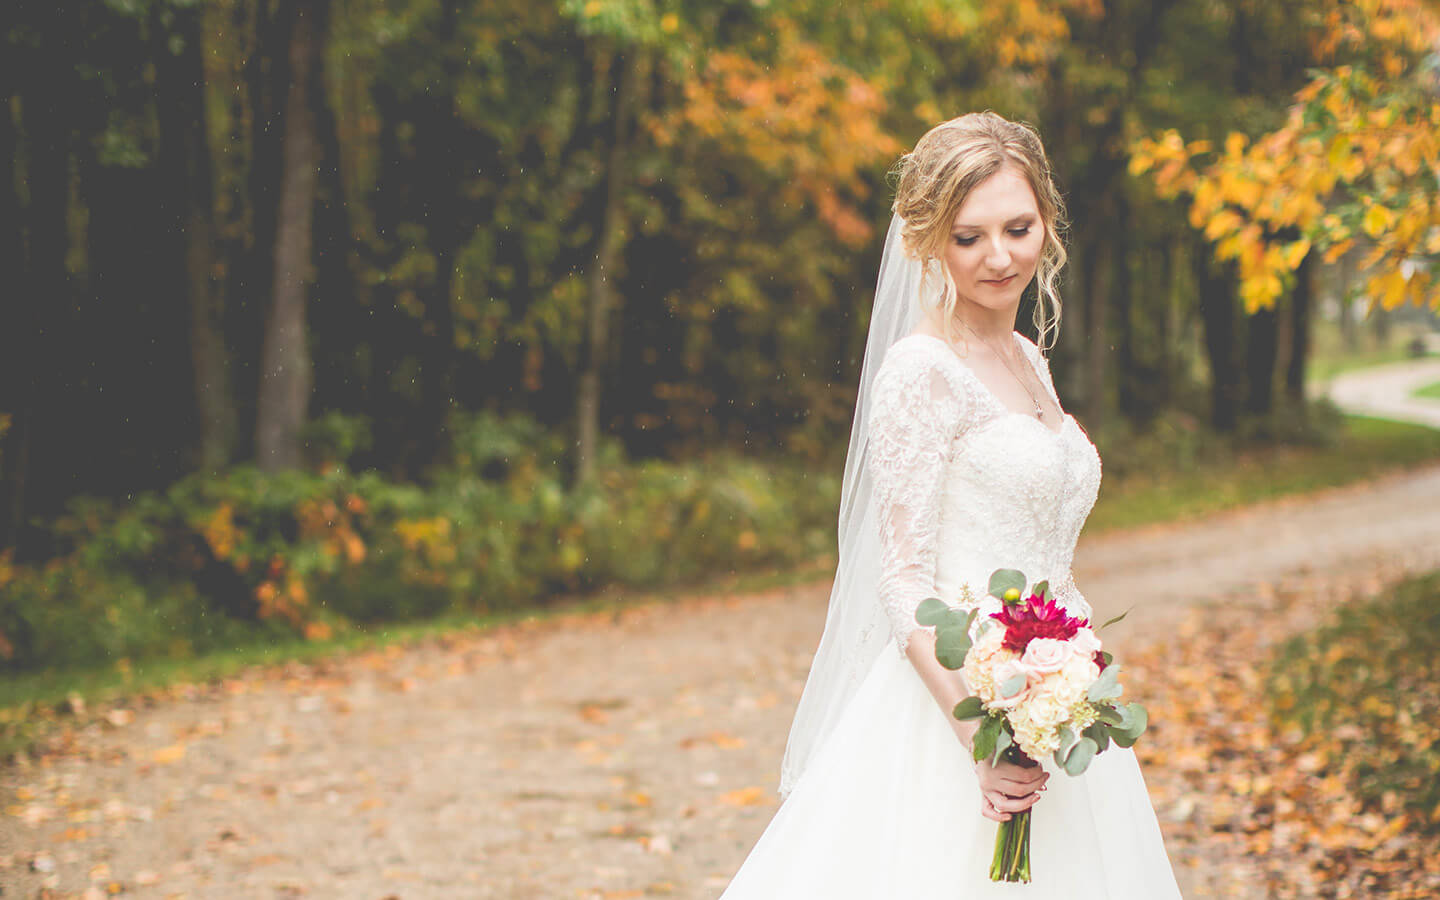 Michigan Wedding, bride on a fall country road